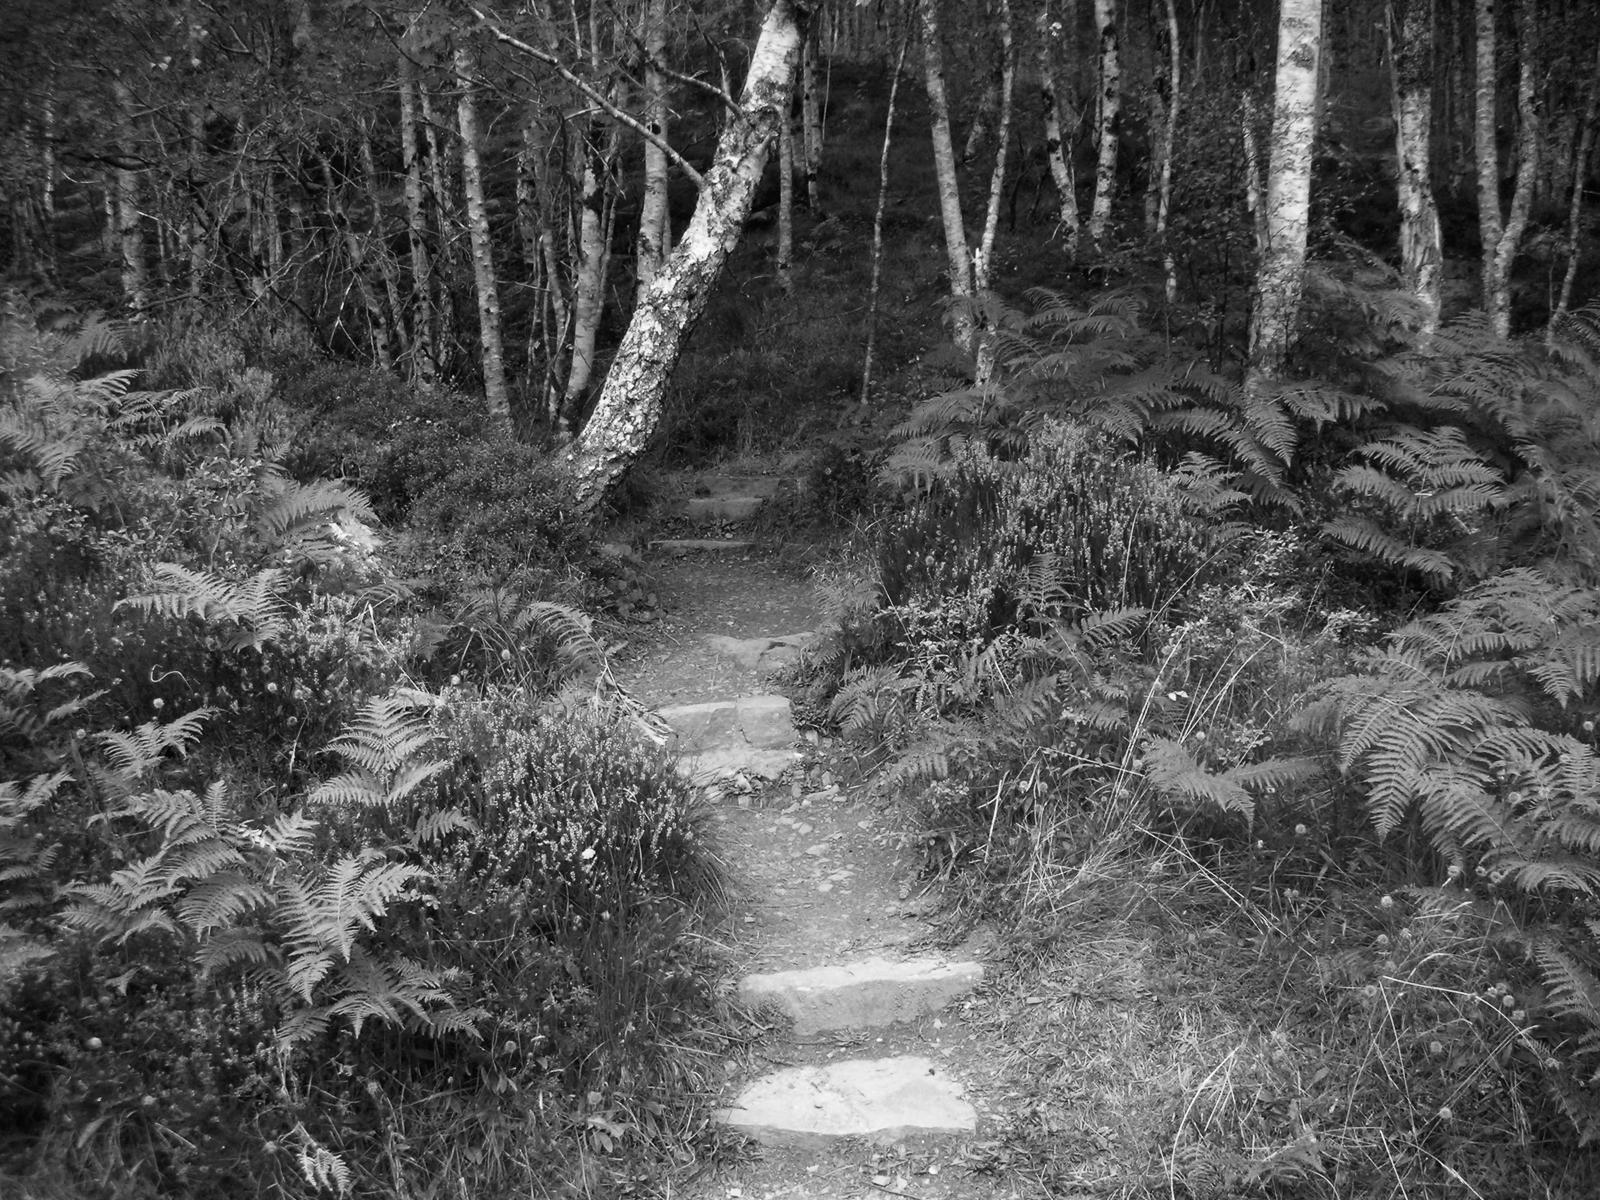 Into the Woods, Scotland : street & stories : TIMOTHY FLOYD PHOTOGRAPHER, NATURE PHOTOGRAPHY, PHOTO ESSAYS, PHOTOJOURNALISM